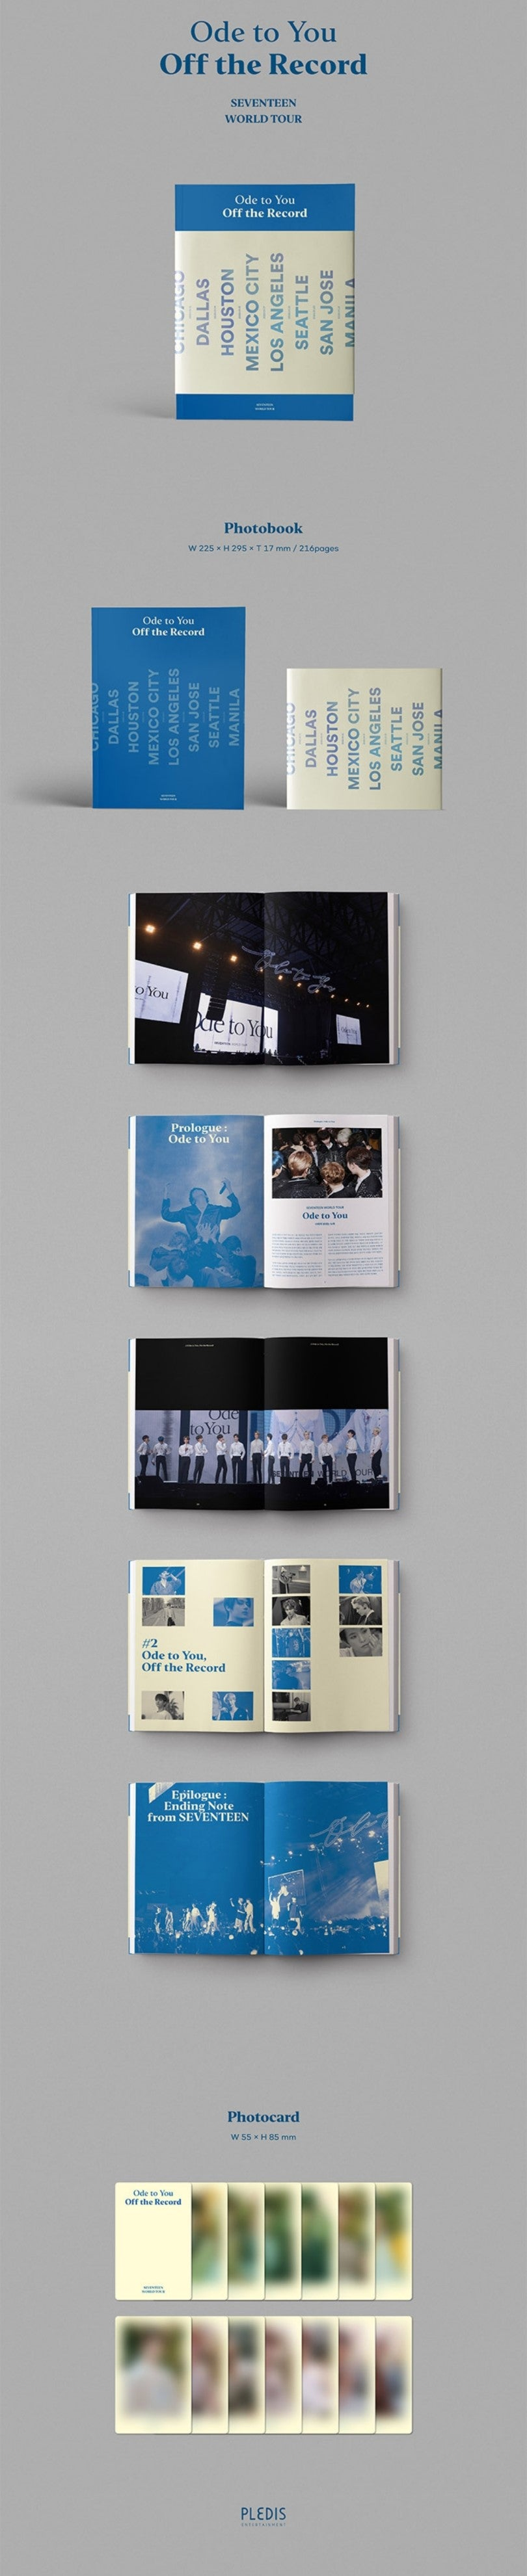 SEVENTEEN ODE TO YOU WORLD TOUR PHOTOBOOK OFF THE RECORD SOKOLLAB UK